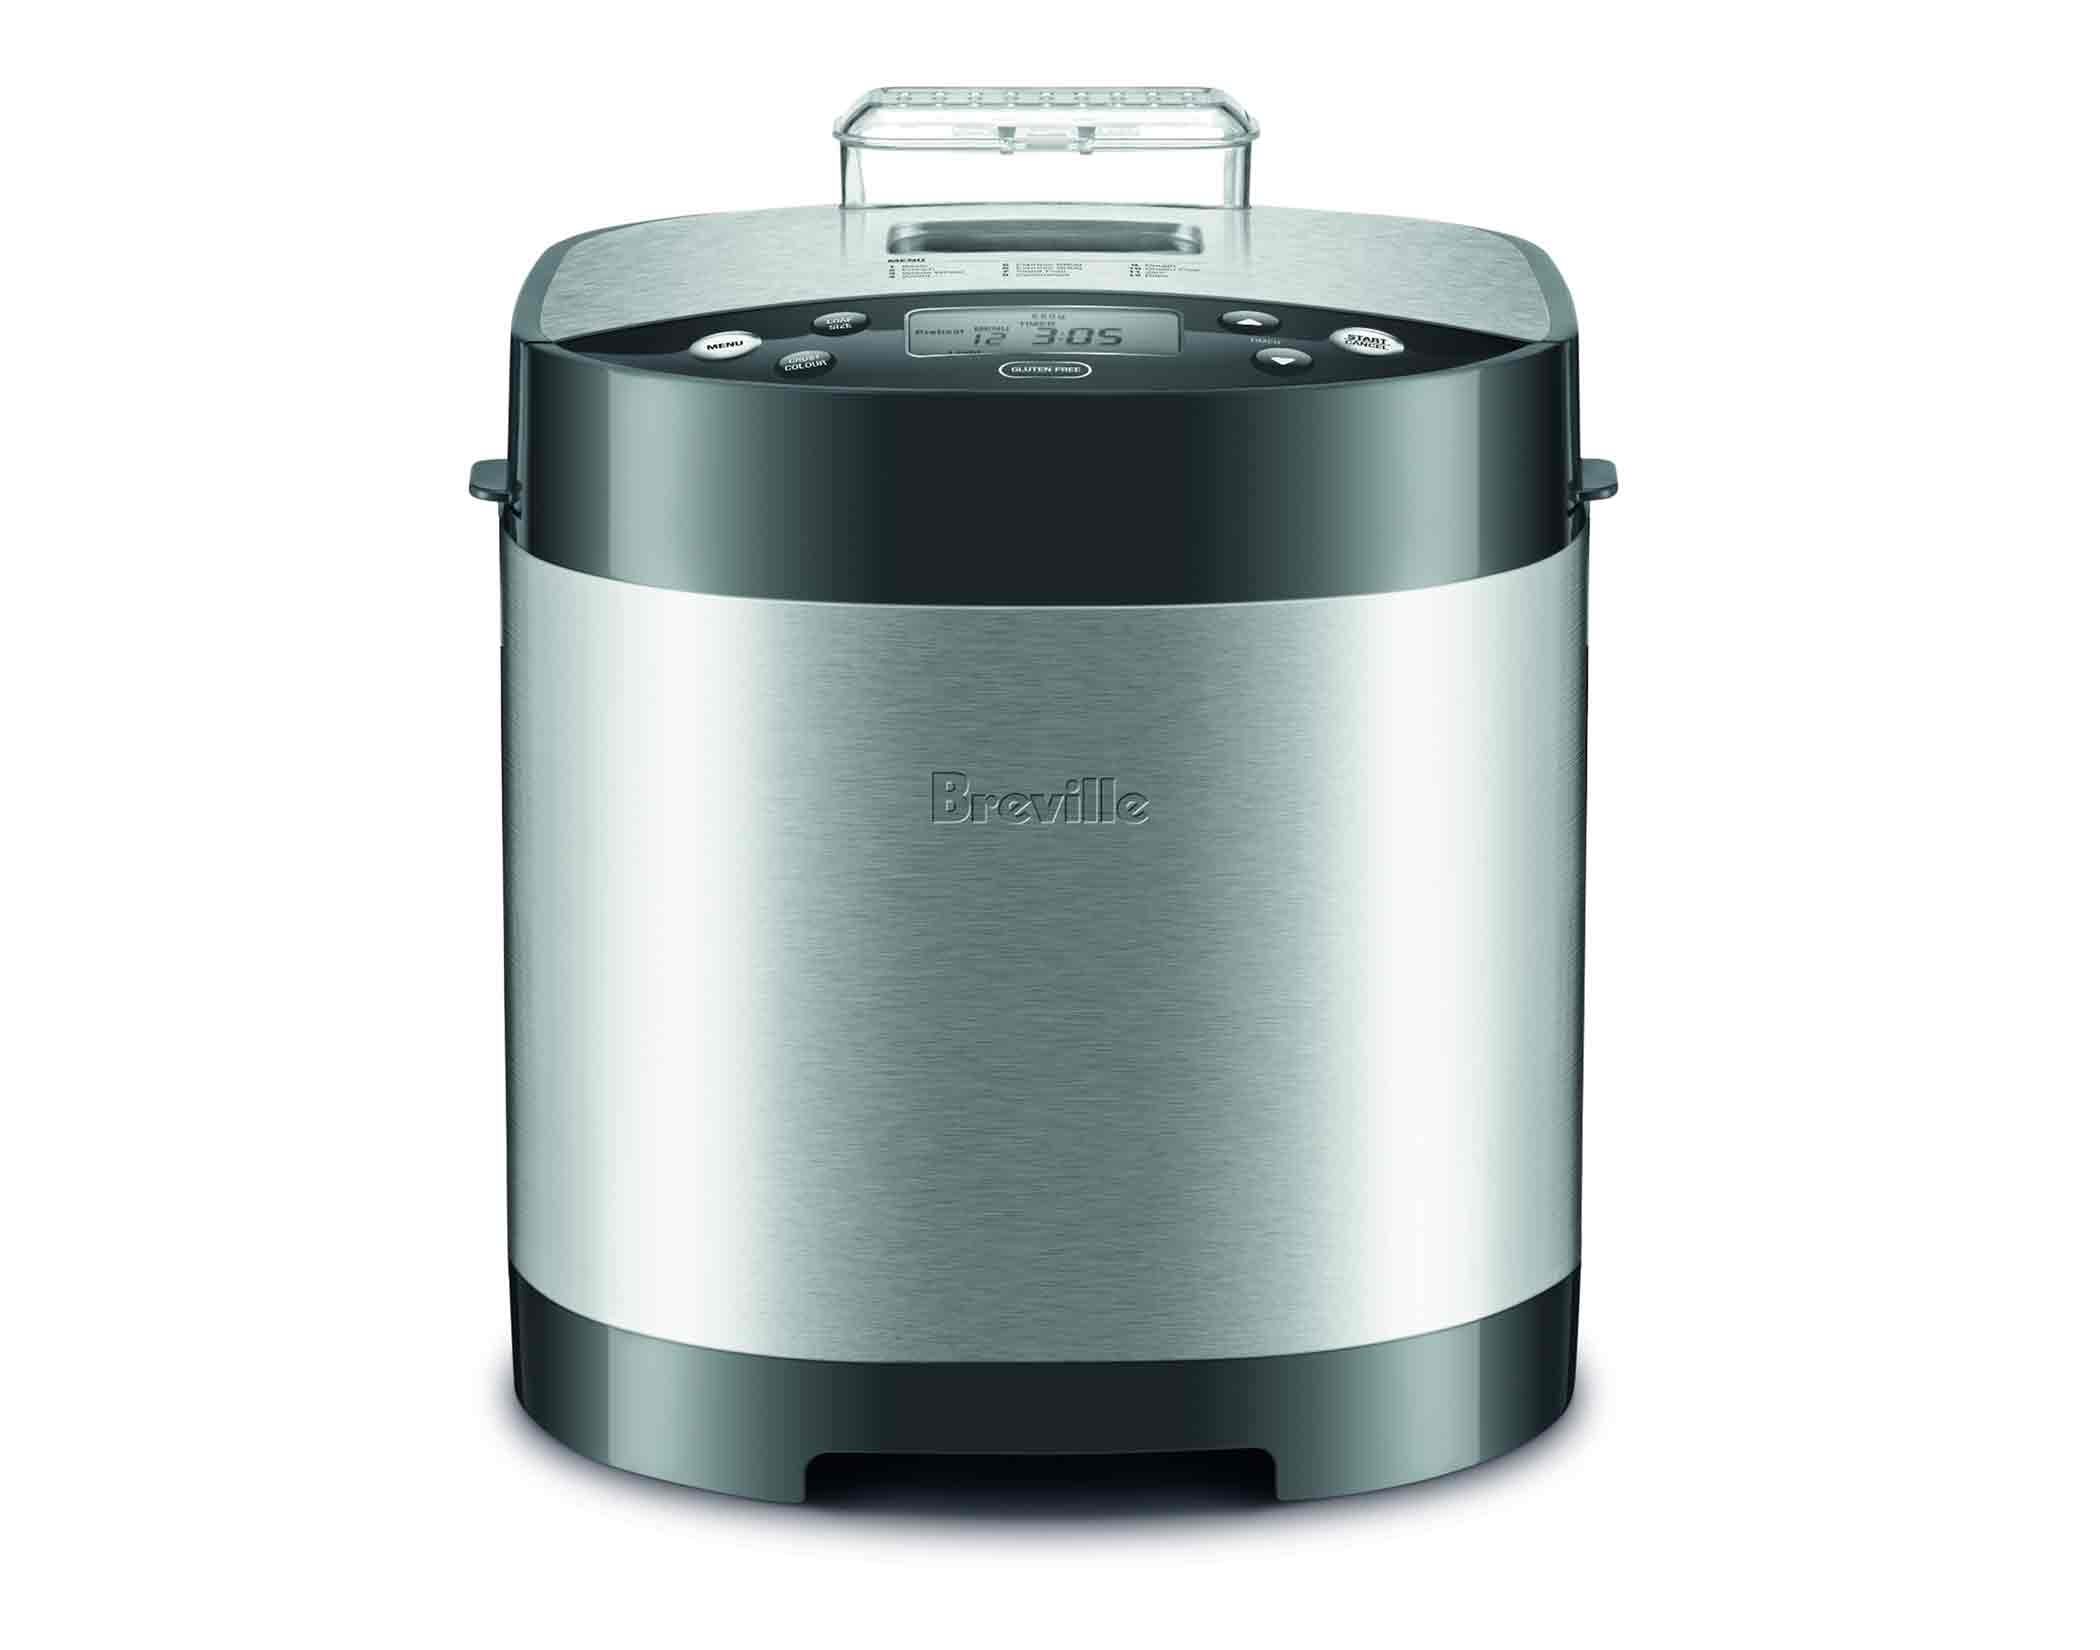 Breville LBM200BSS Bread Baker Bread Machine main2